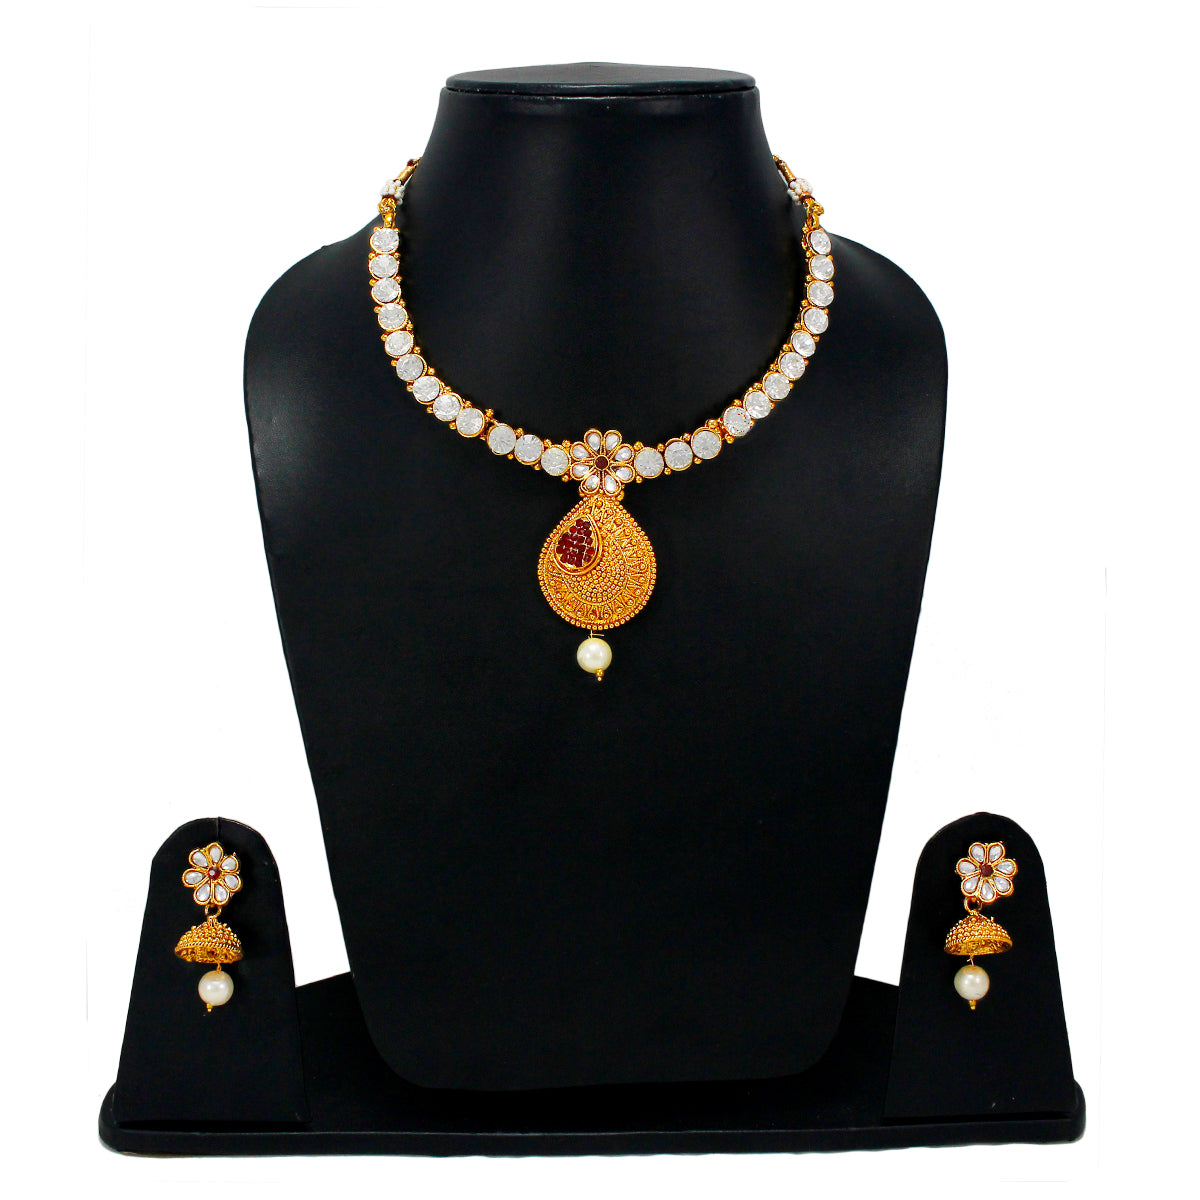 Royal Gold Plated Designer Kundan Stone Rani Har Design Necklace Floral Drop Shape and Earrings with White  Red Stones  and Pearls